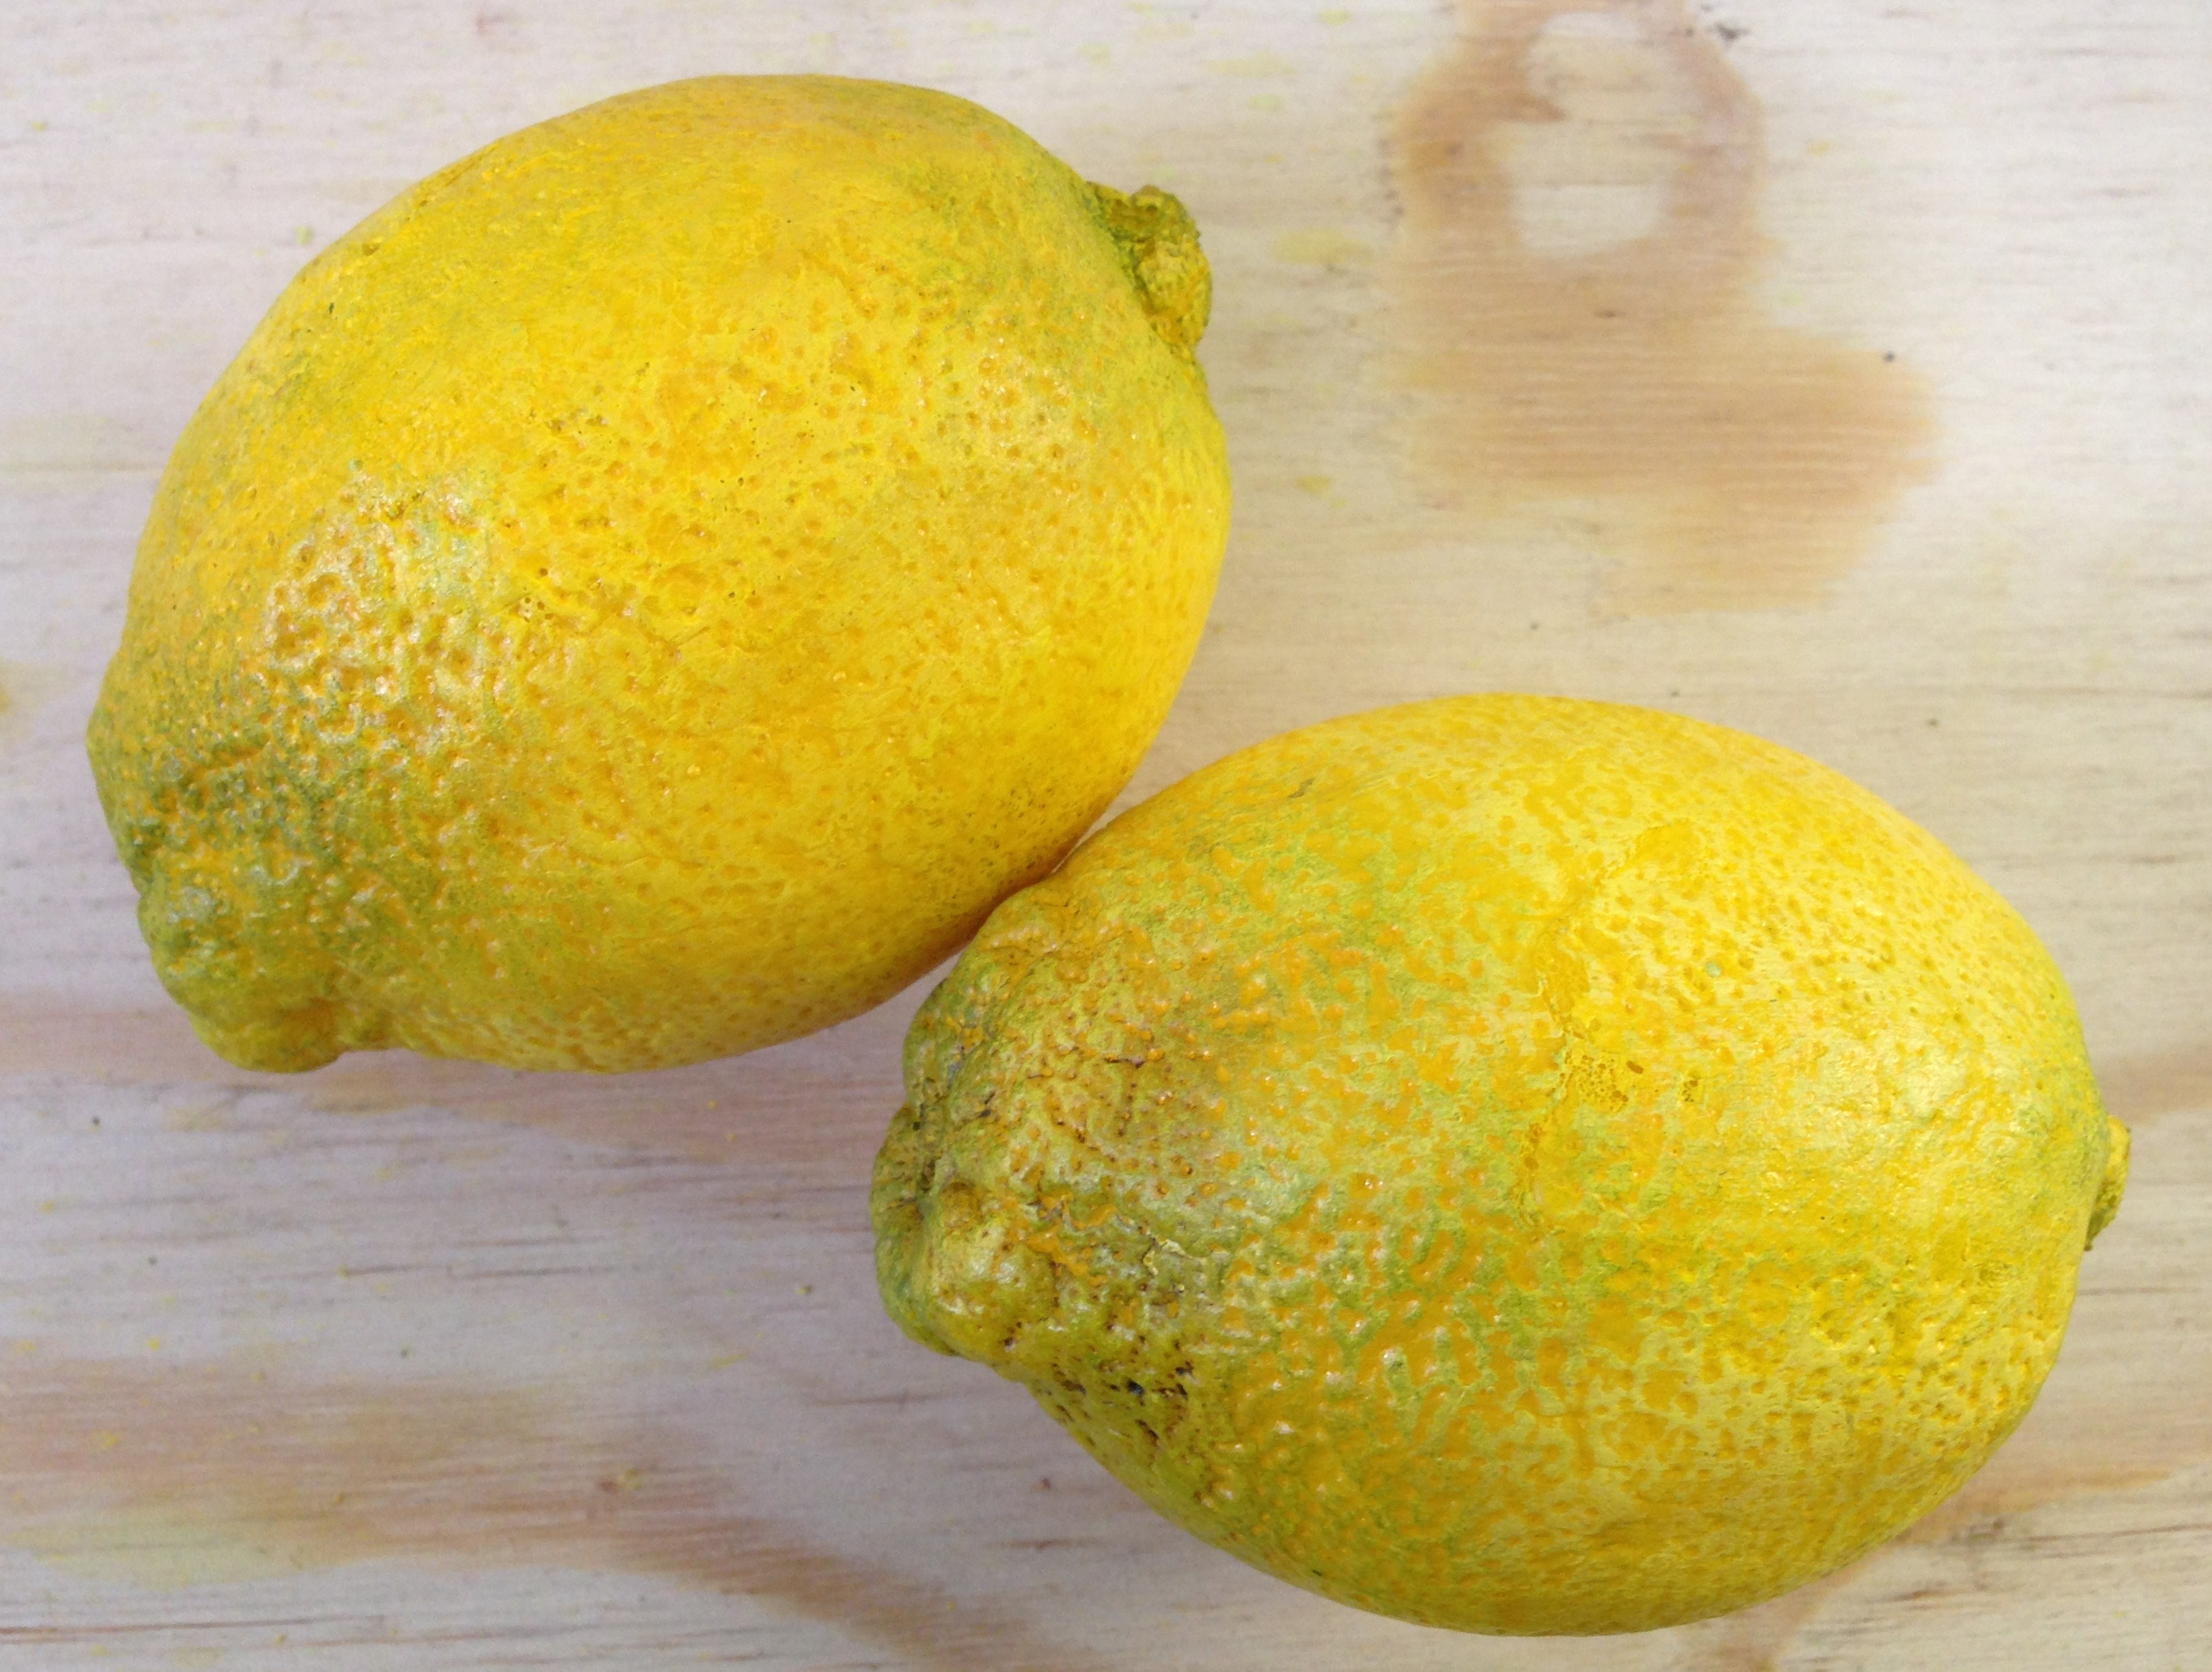 Fabricated lemons